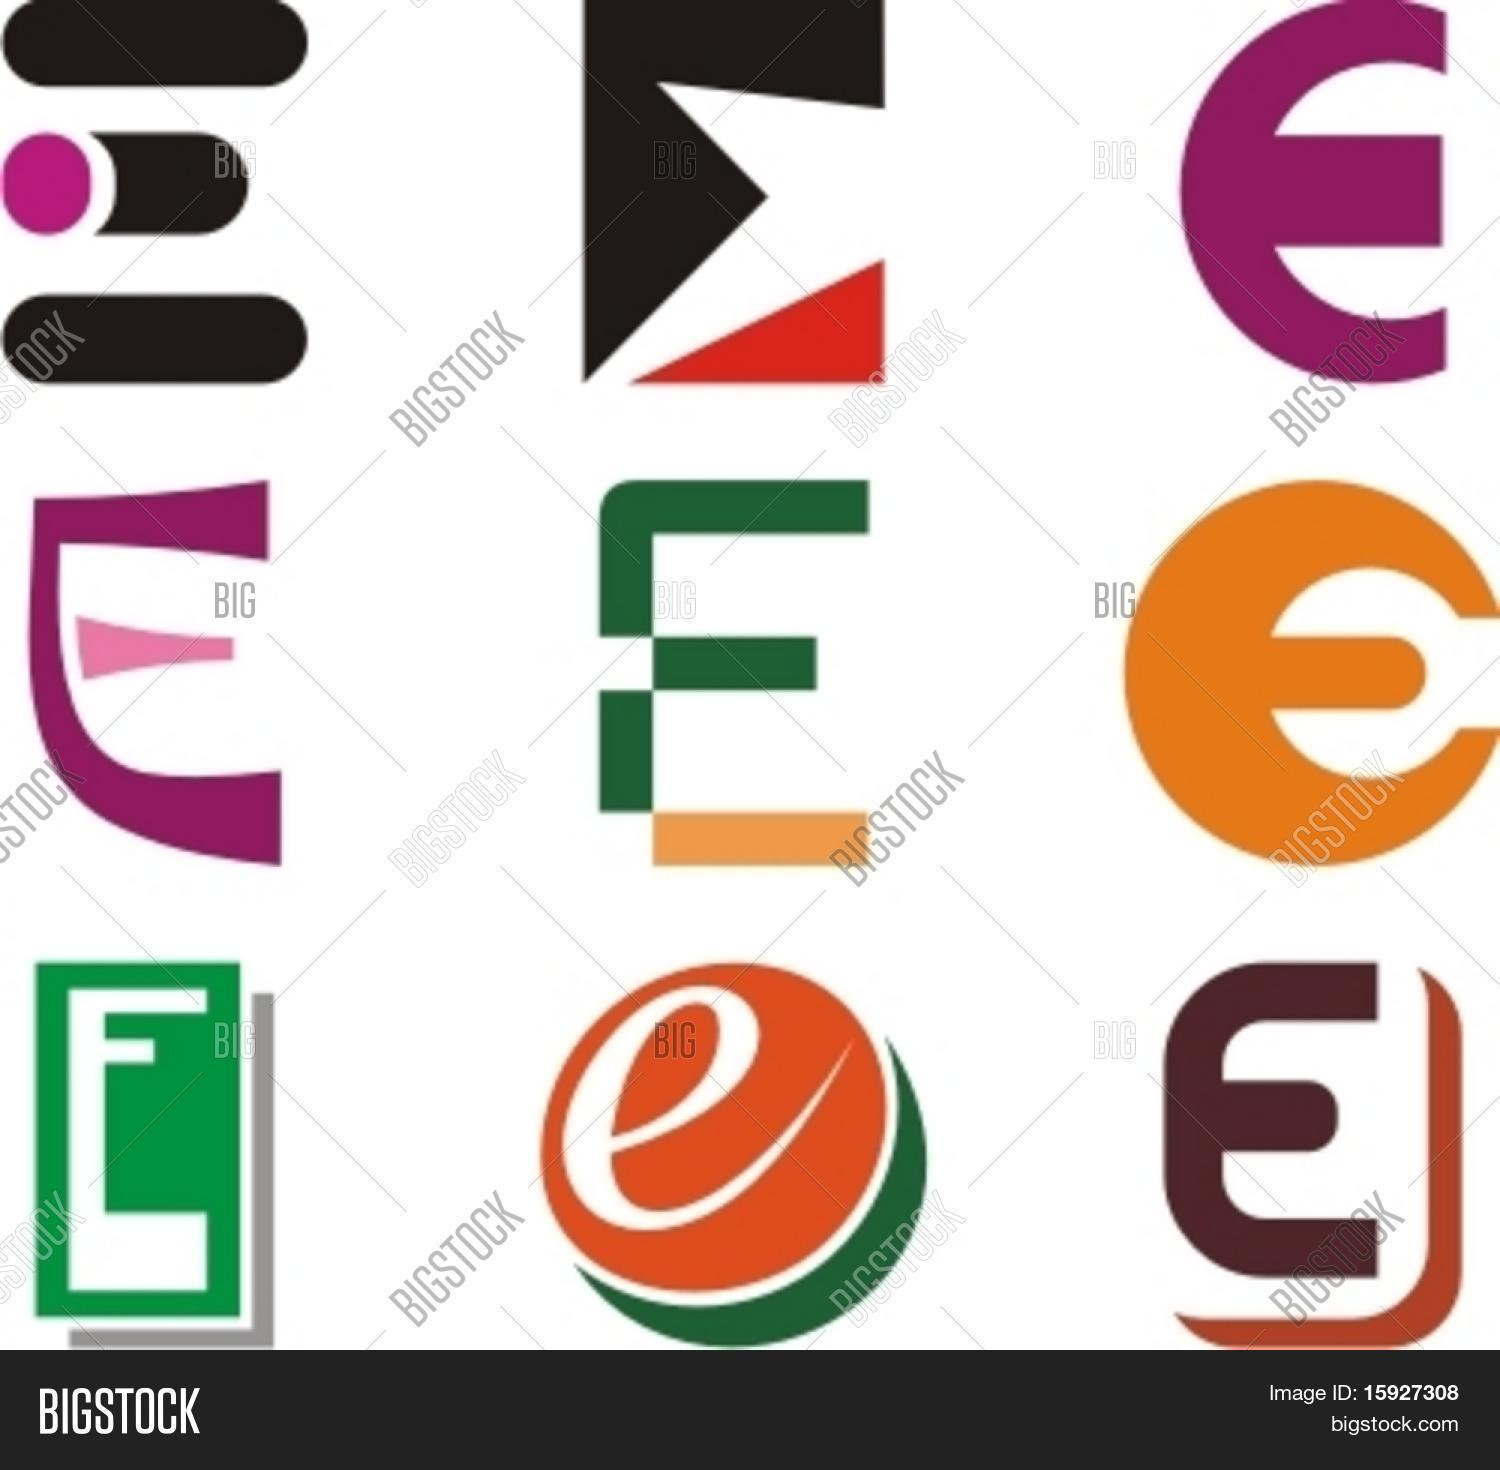 Alphabetical Logo Design Concepts. Letter E. Check my ...